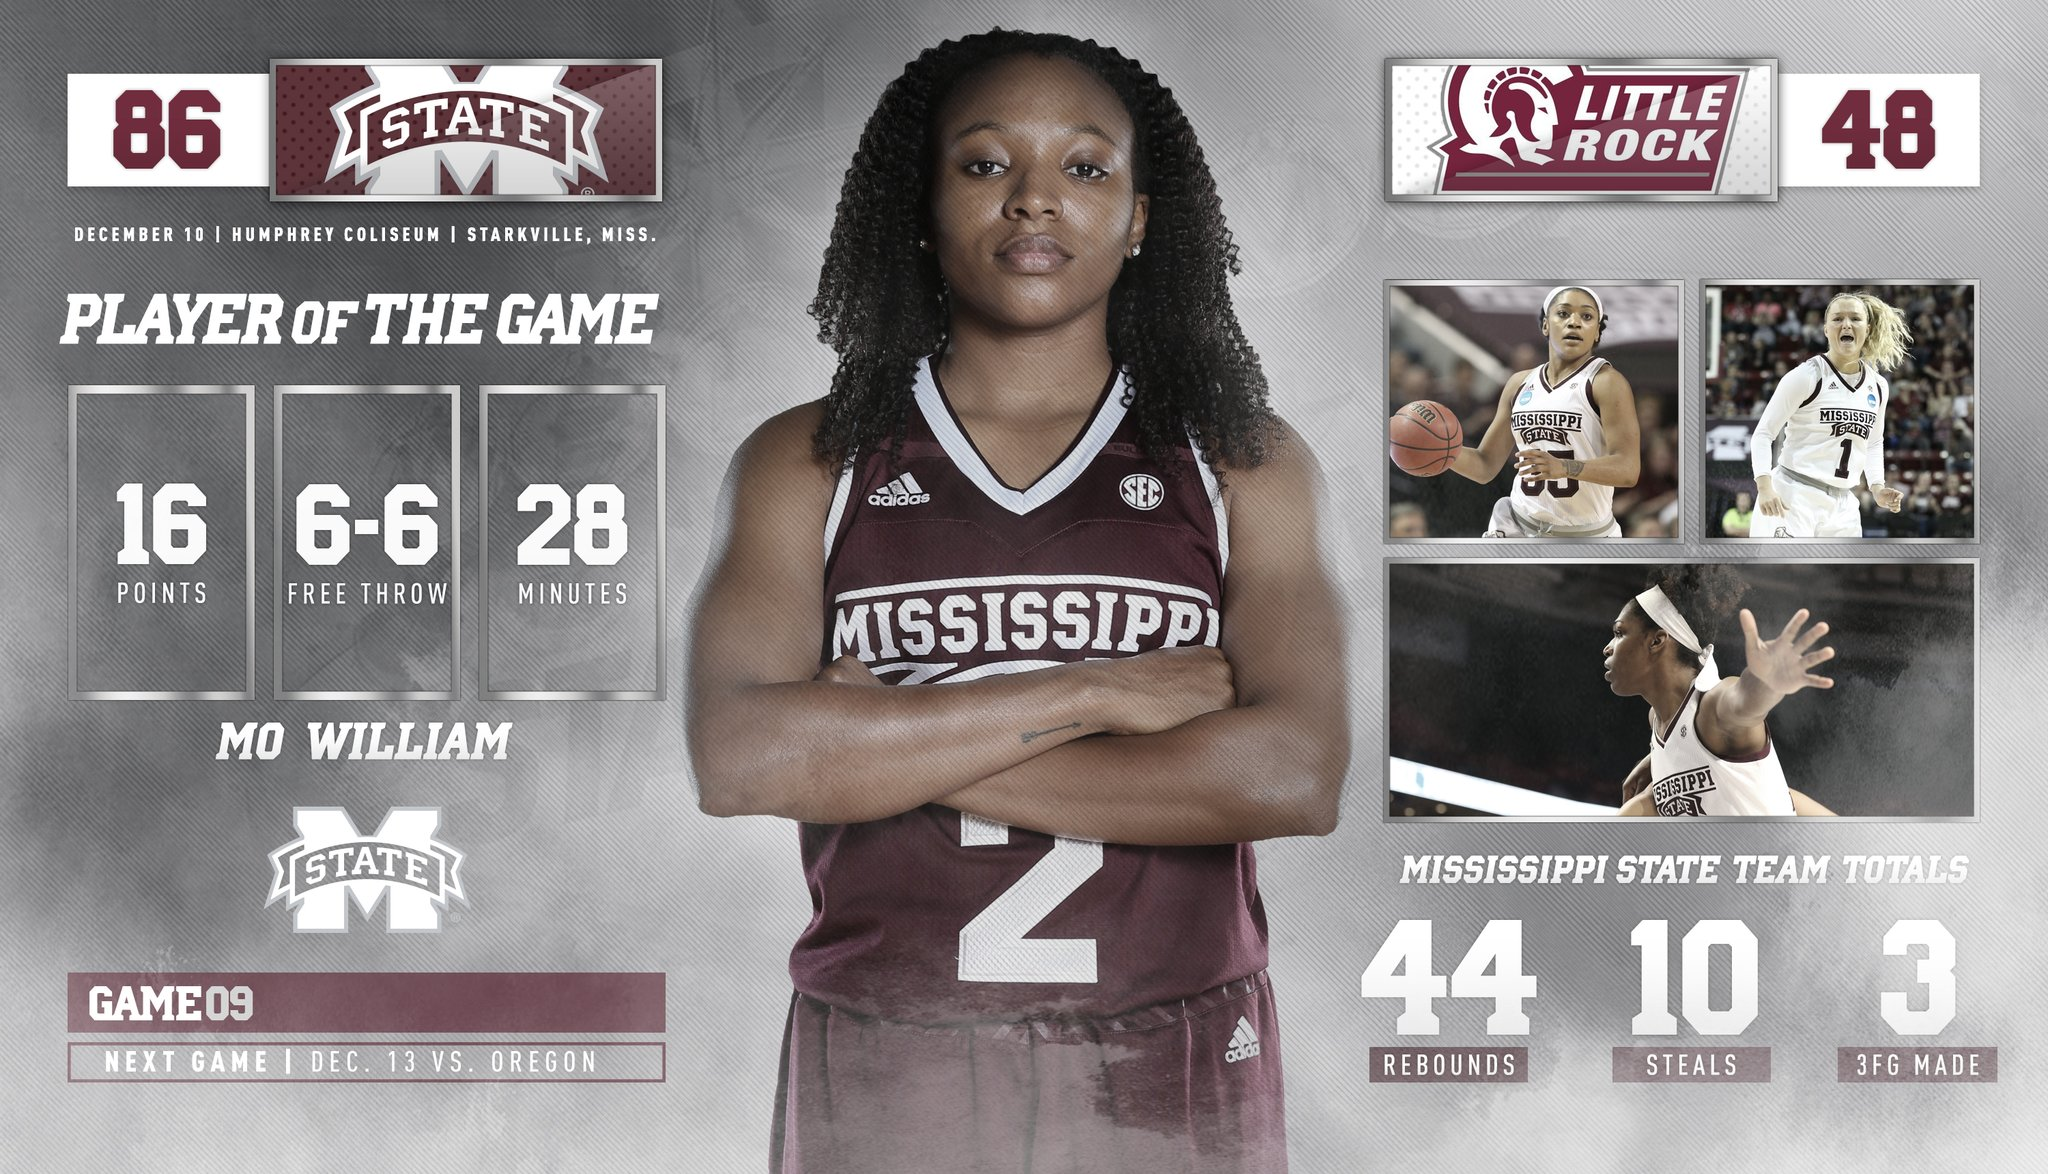 Mississippi State honors Morgan William, cruises to 86-48 win over Little Rock to remain unbeaten